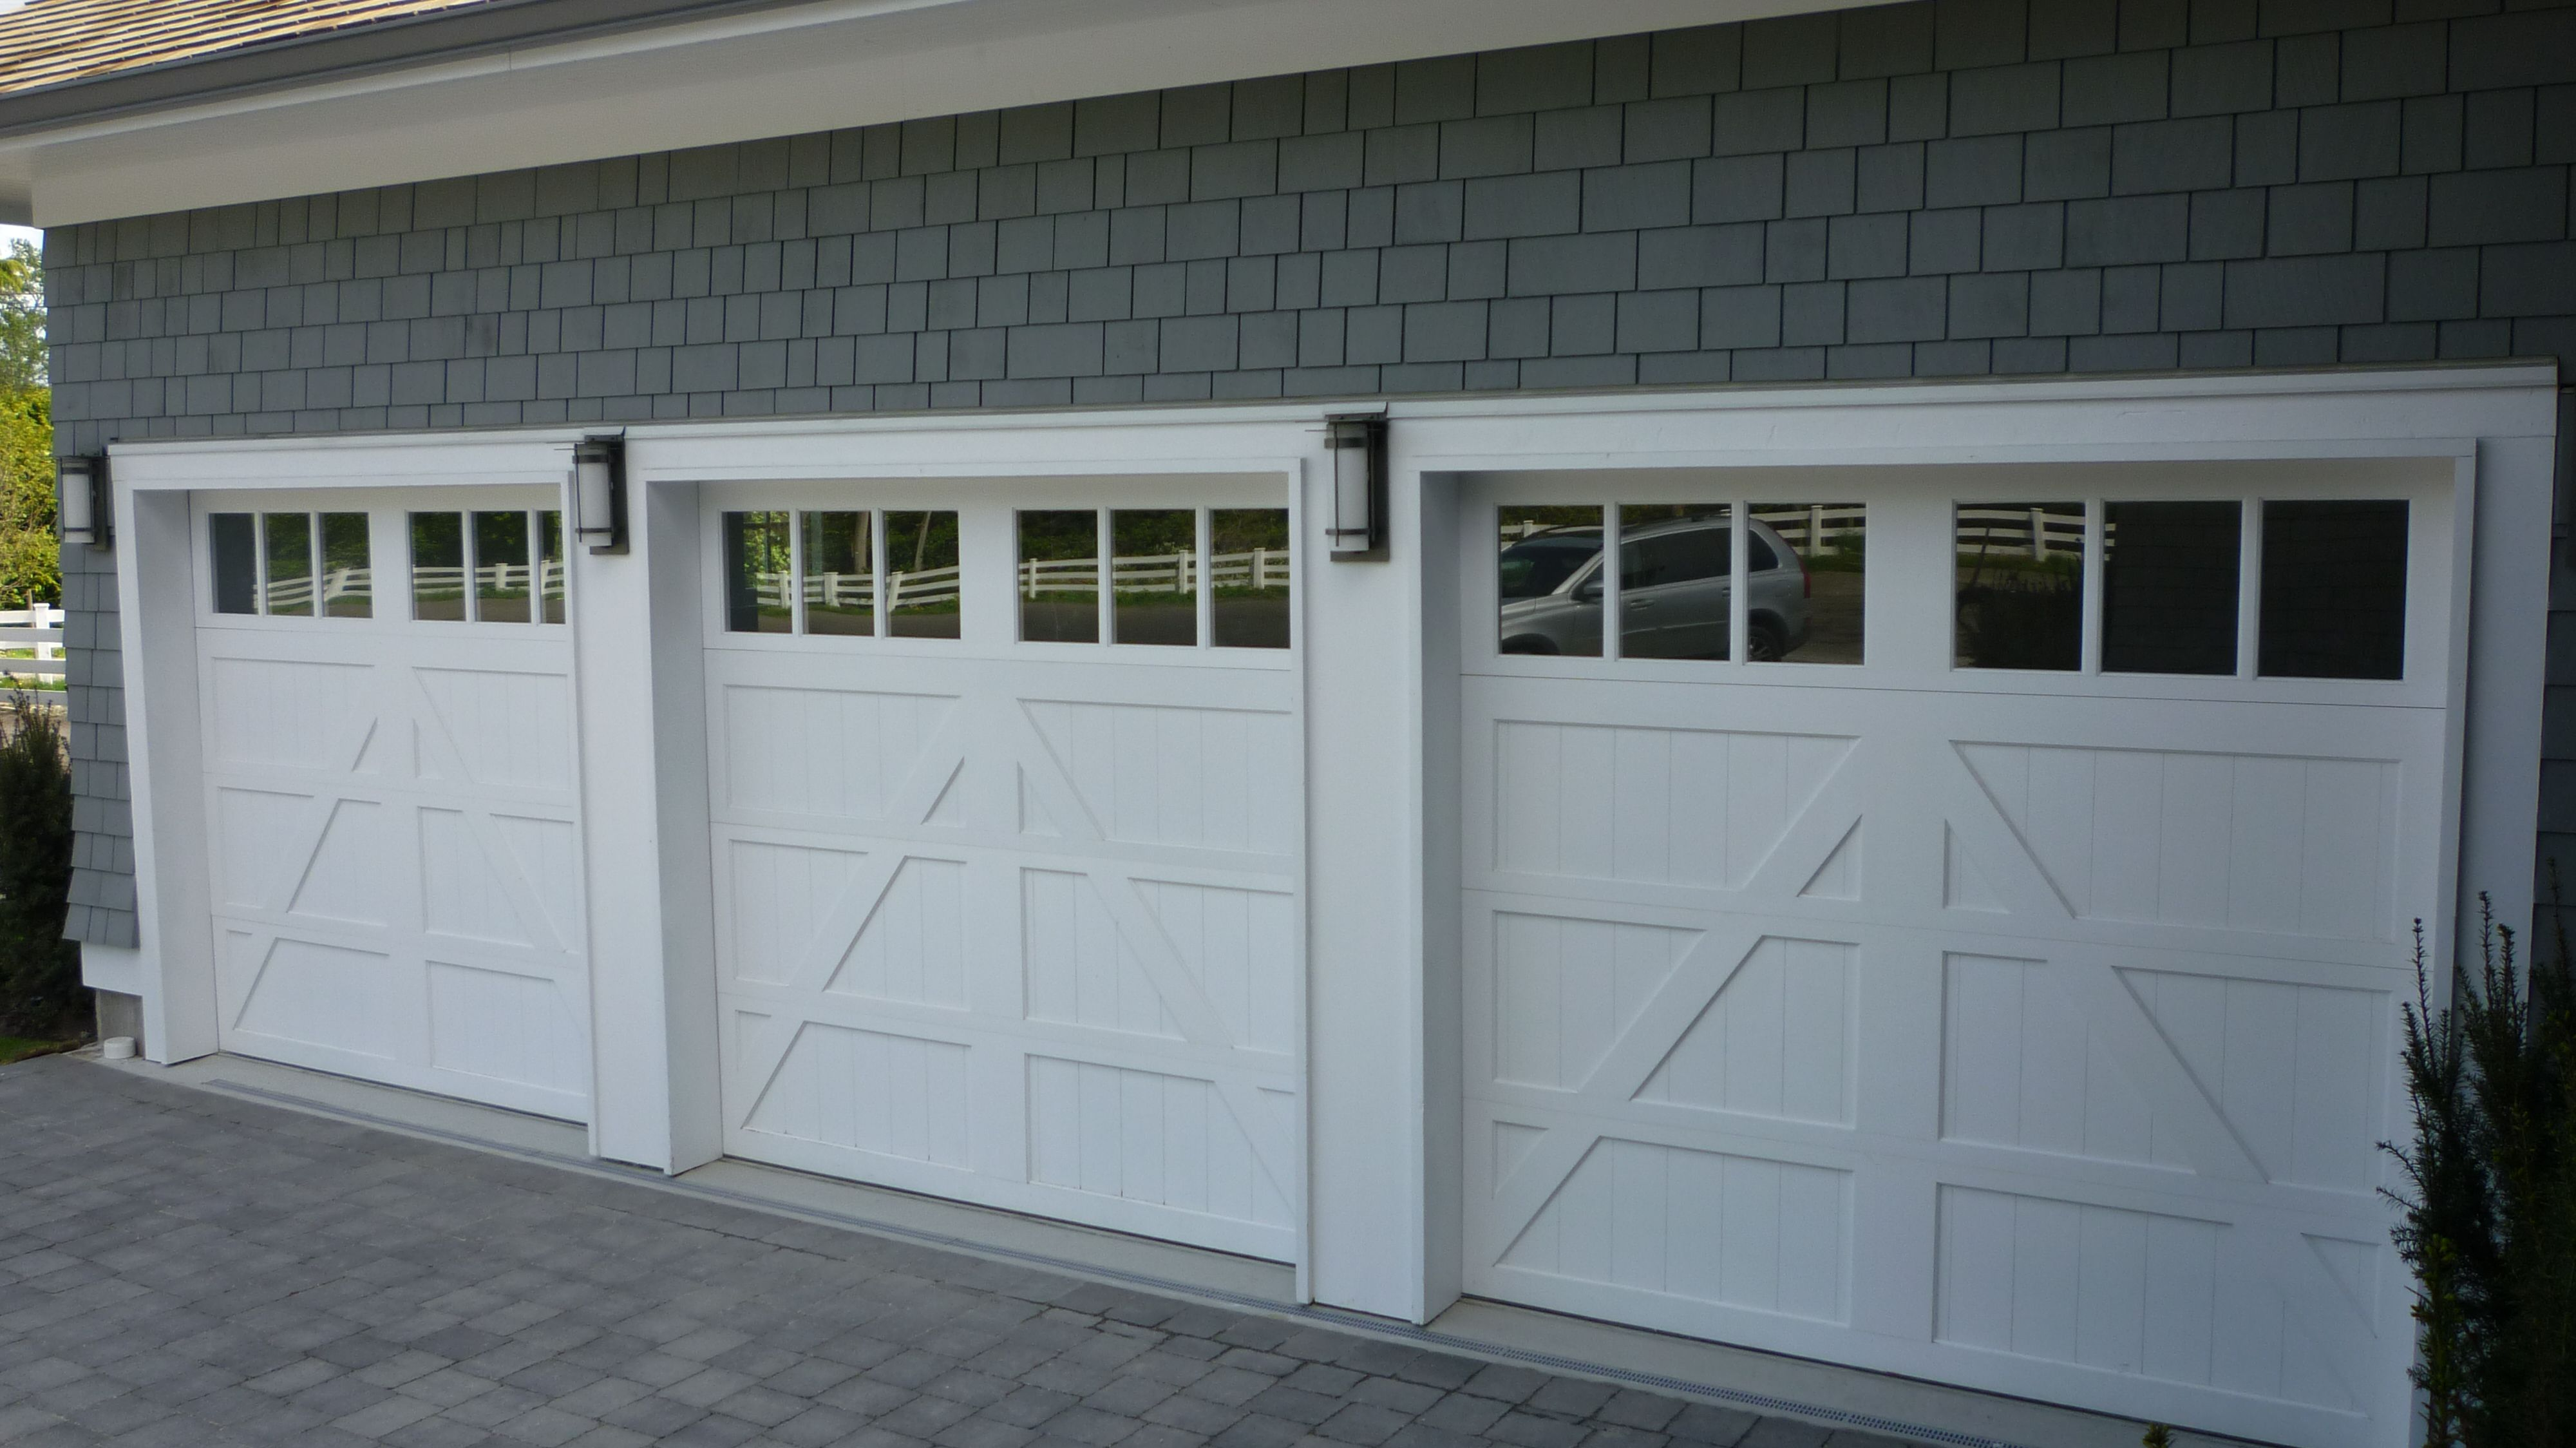 Craftsman style garage doors - Clopay Semi Custom Reserve Collection Wood Carriage House Style Garage Doors Design 6 With